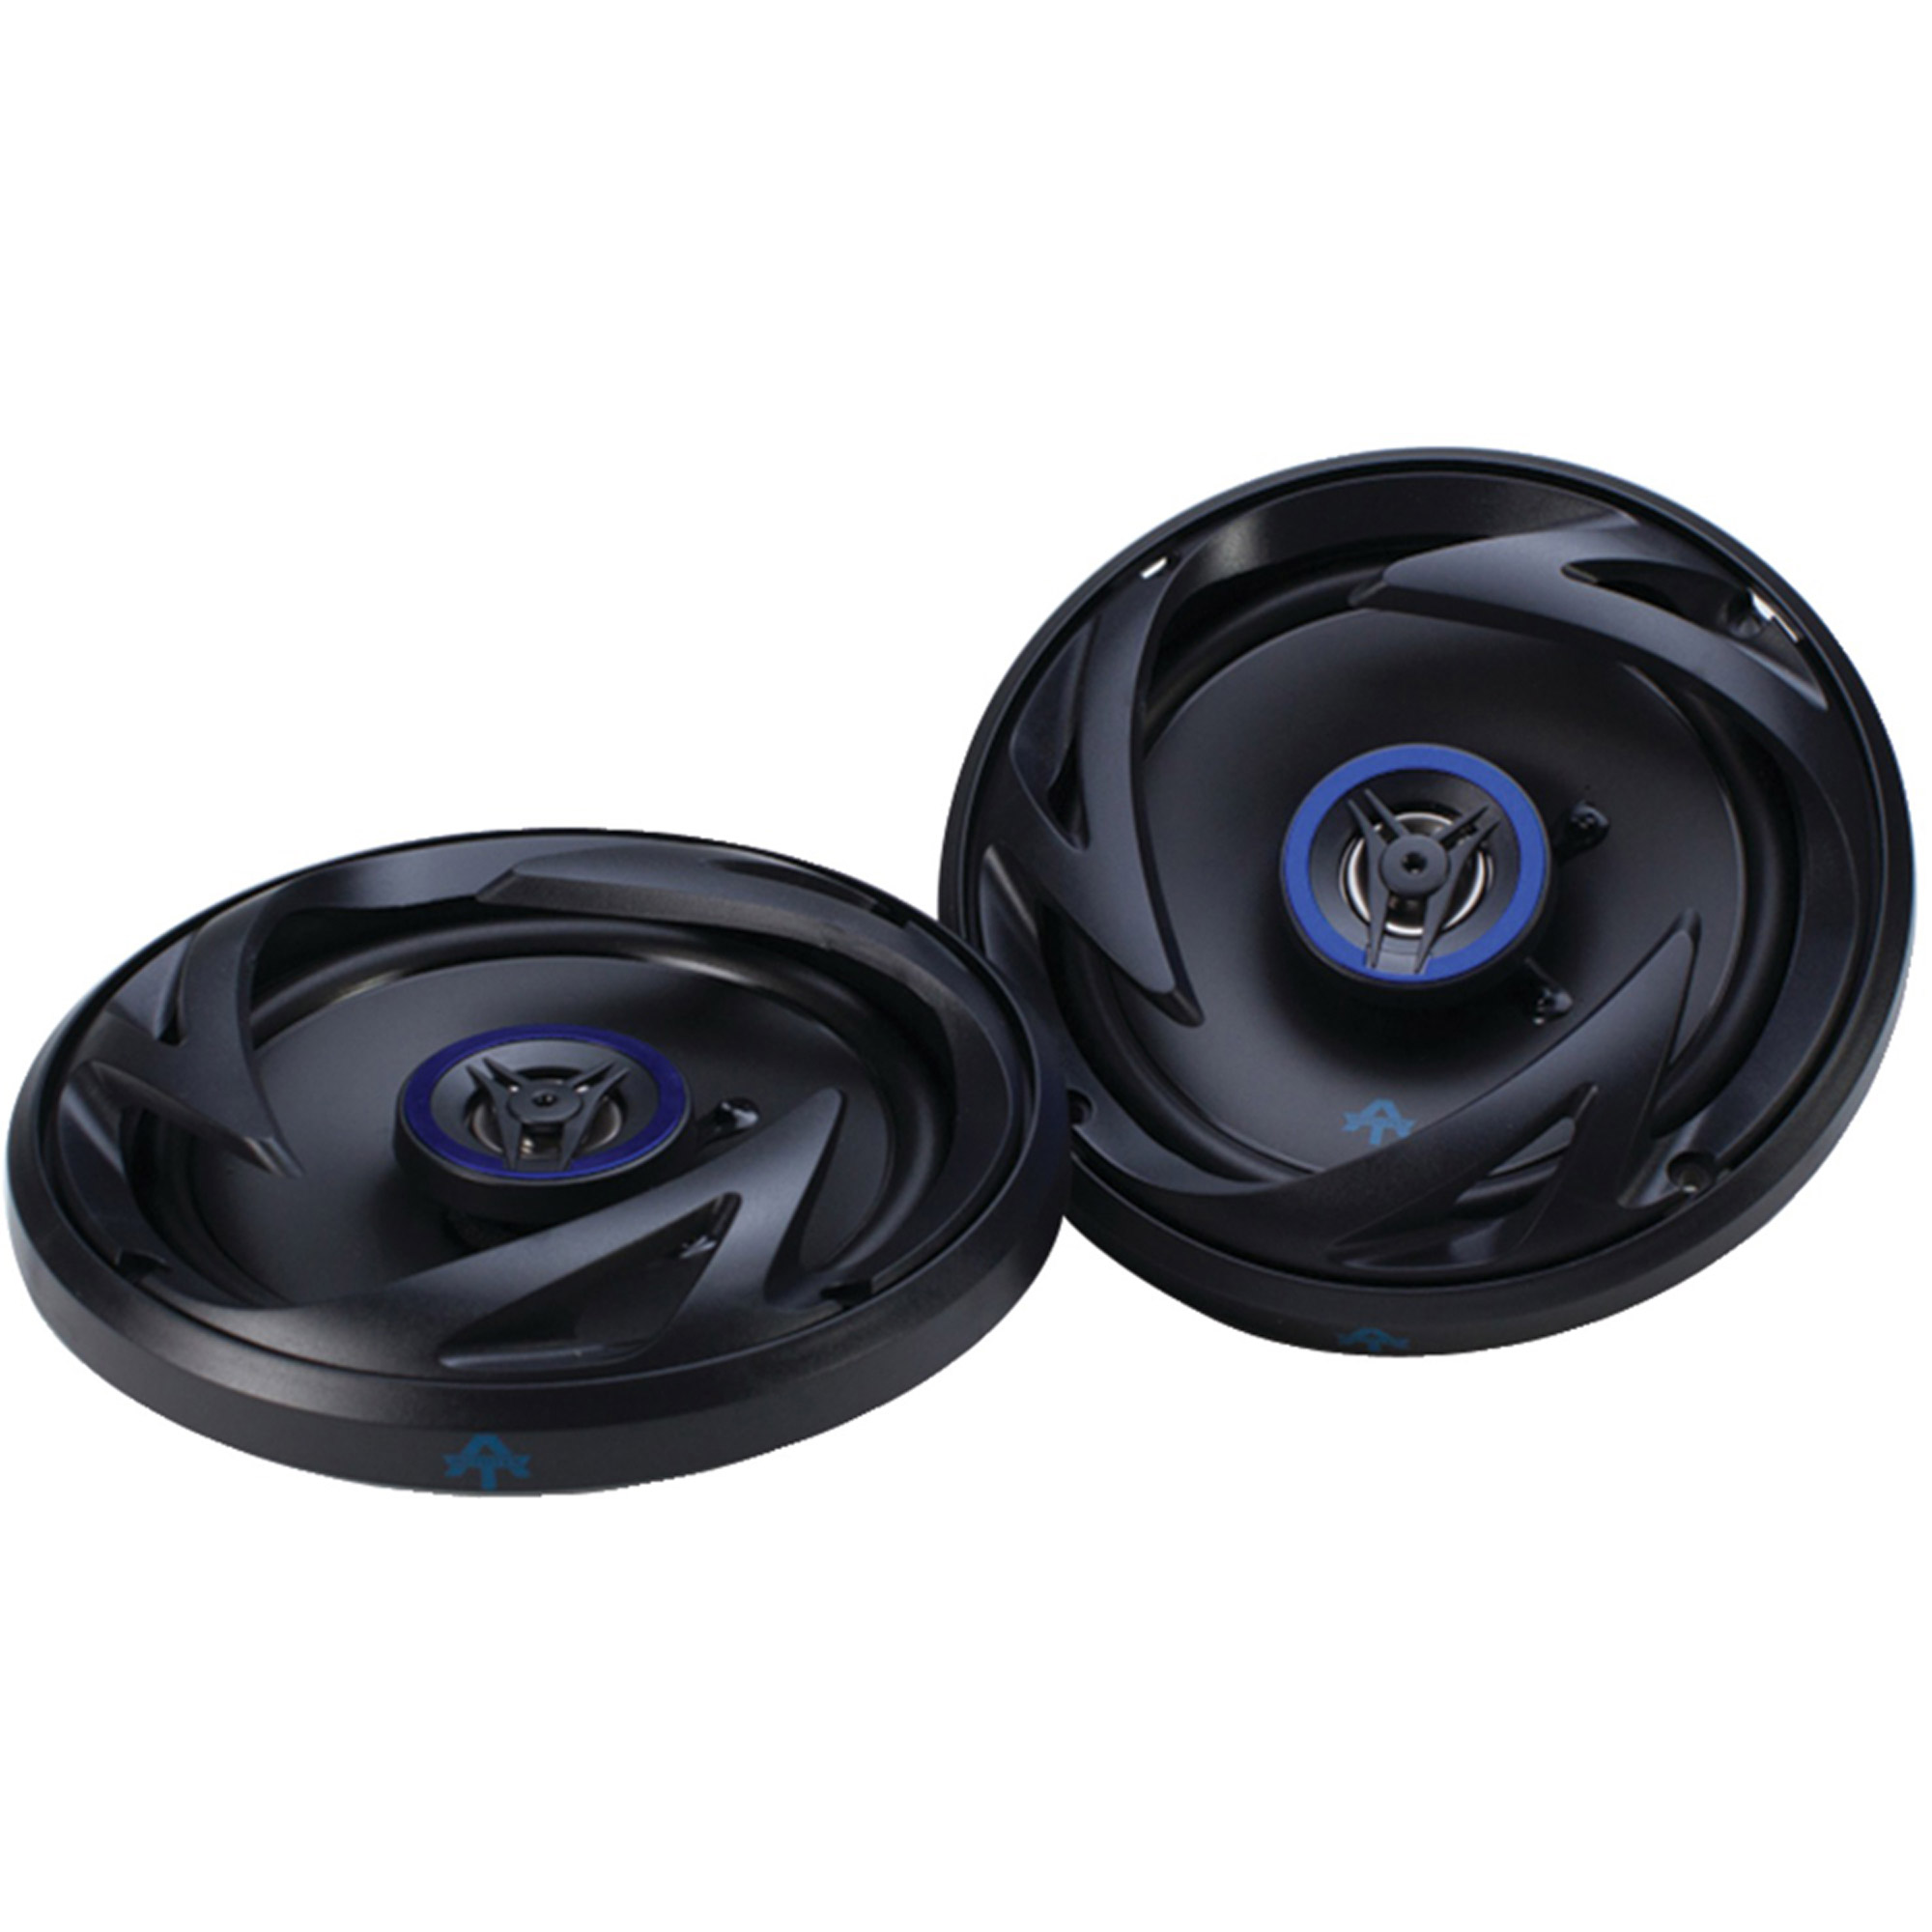 "Autotek ATS65CXS ATS Series Speakers, 6.5"" Shallow Mount, Coaxial, 300 Watts"